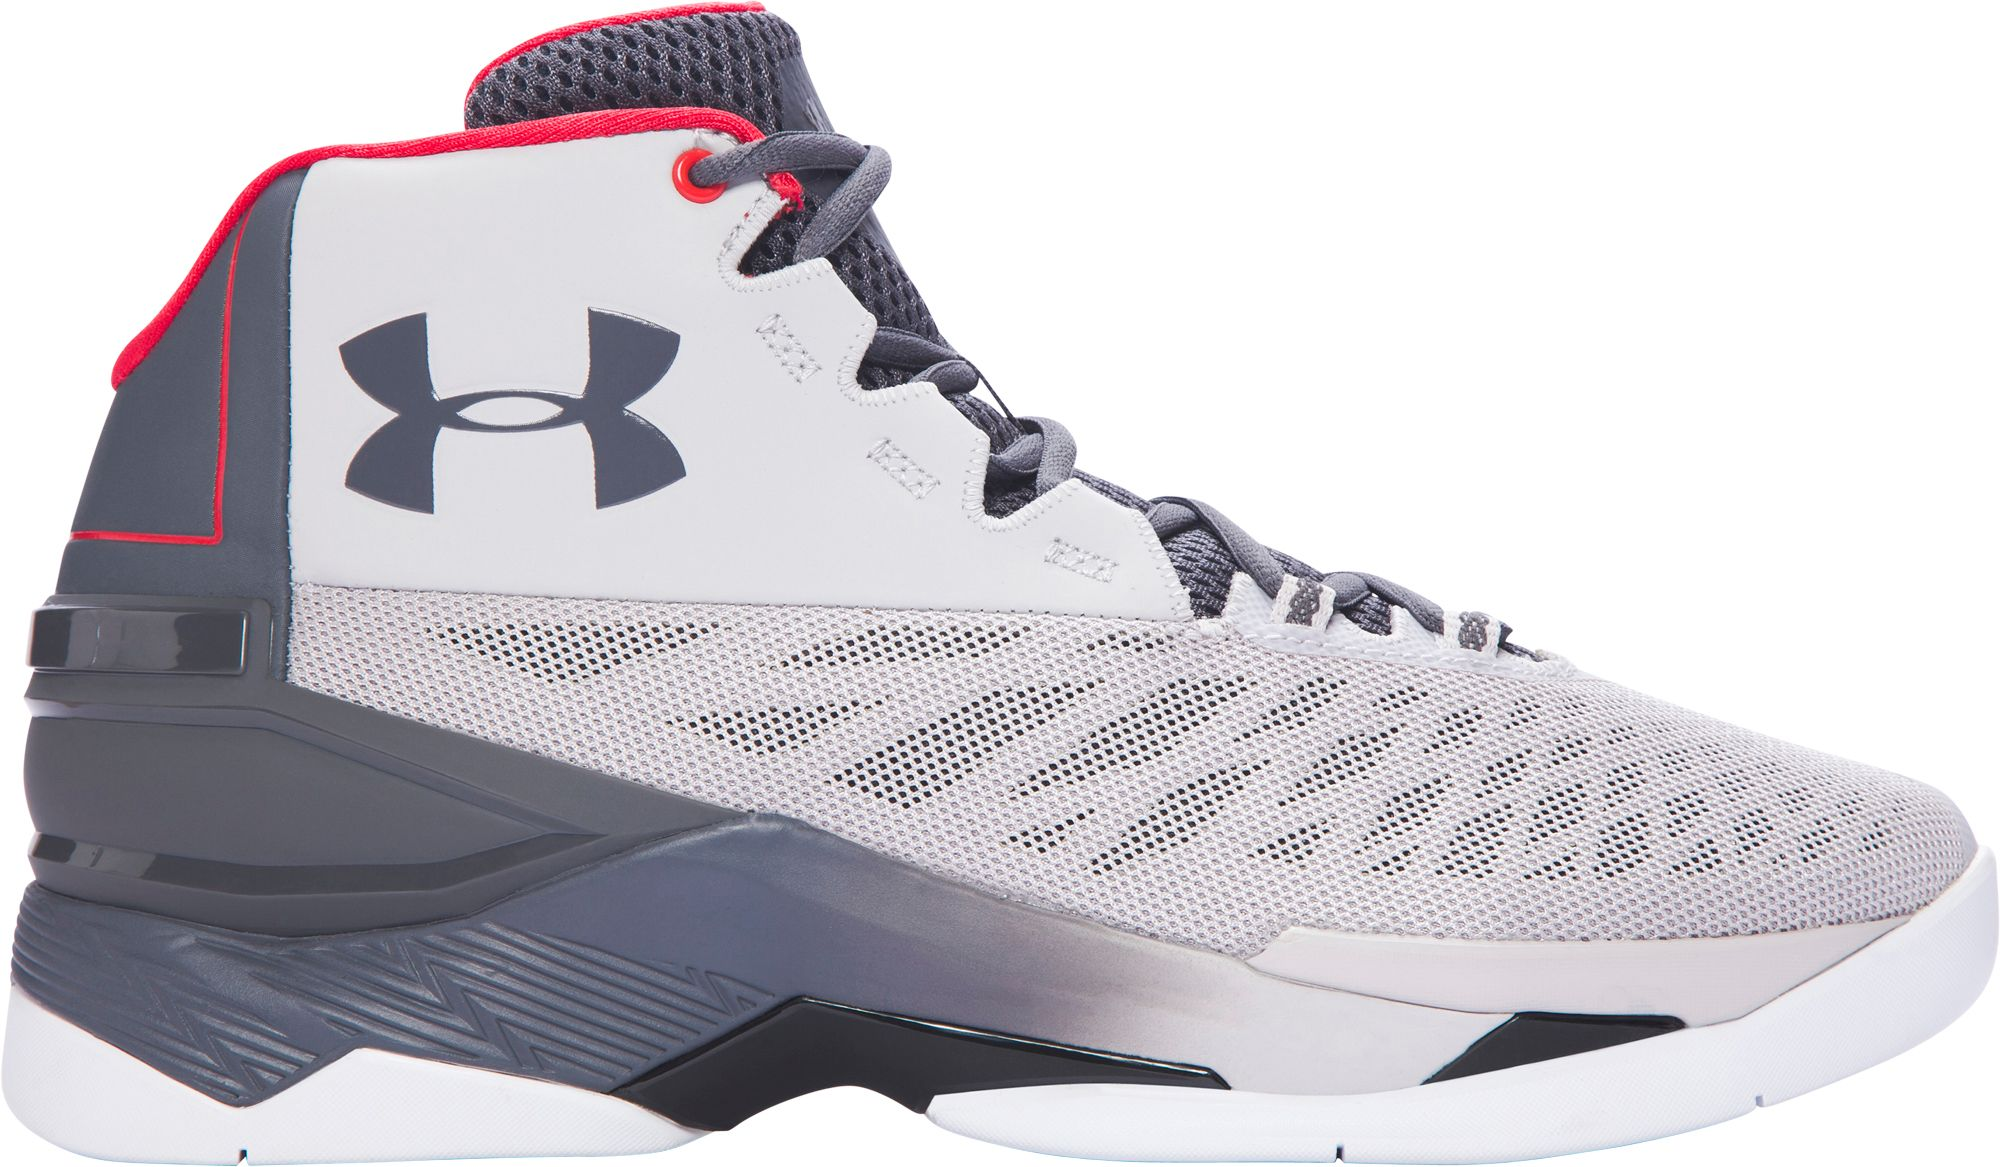 on sale 76d5b 65281 Under Armour Mens Longshot Basketball Shoes DICKS Sporting Goods 85%OFF